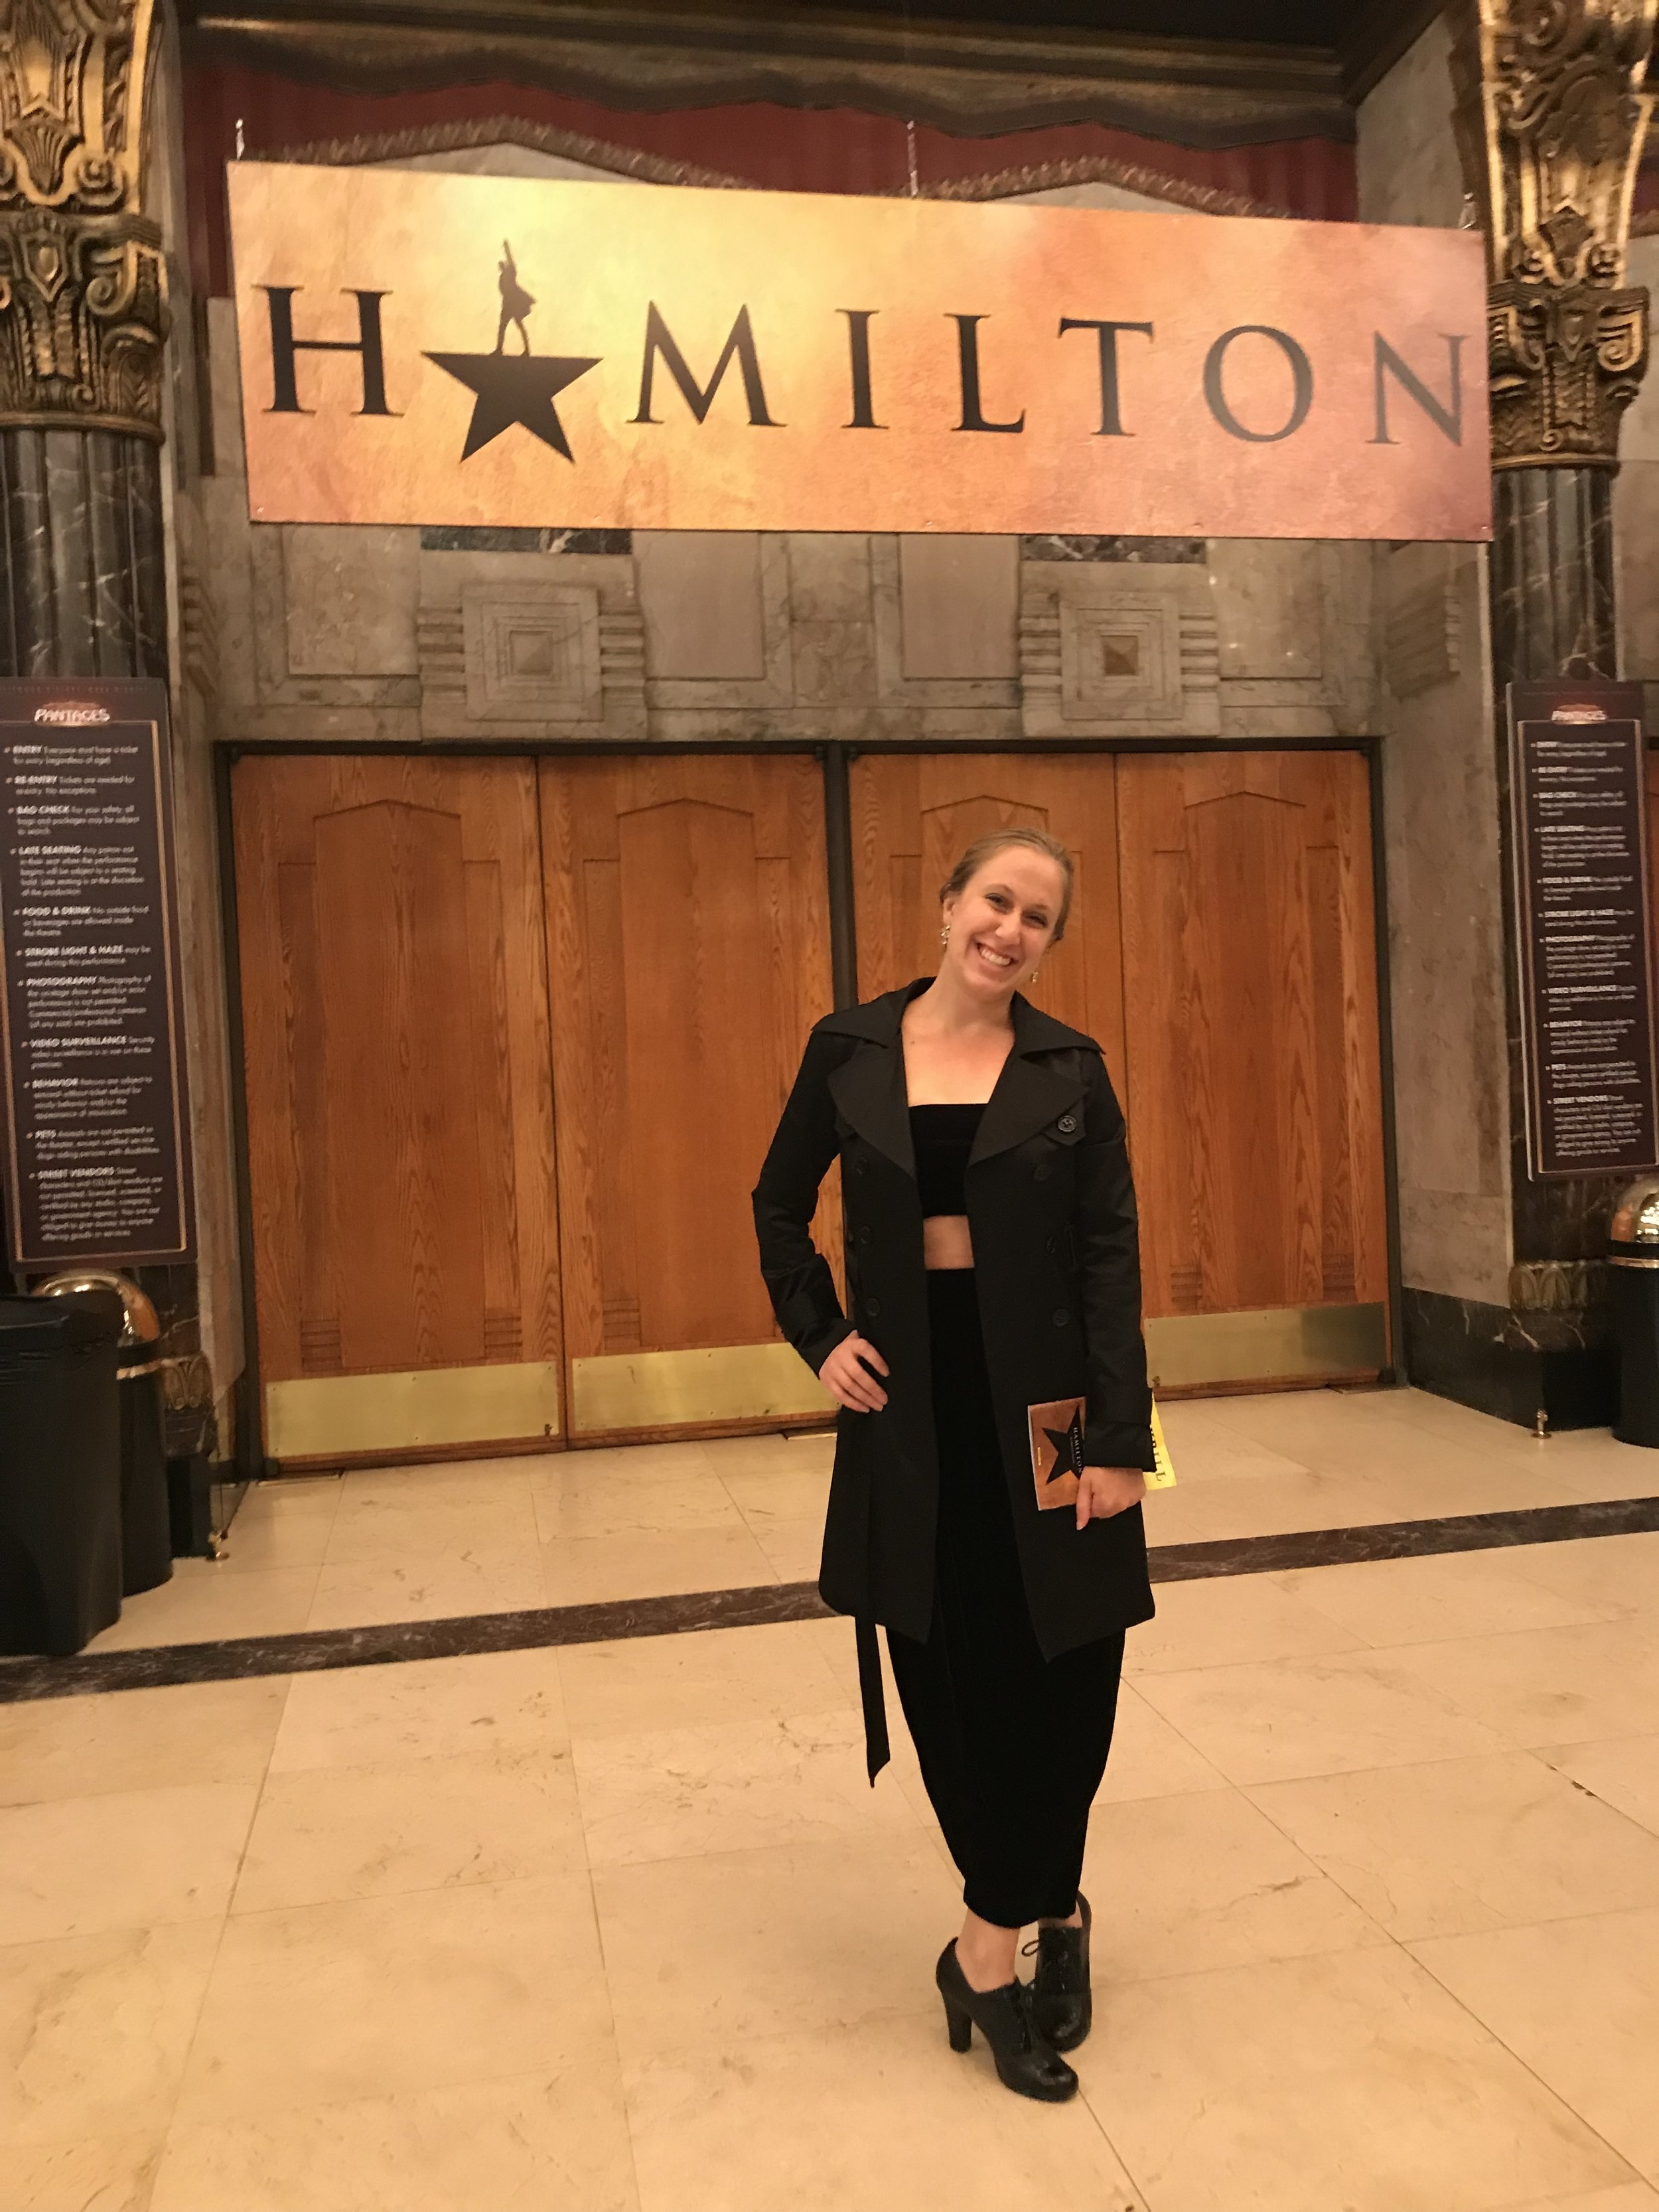 During the first few months in LA, I had the opportunity to see Hamilton. It was a beautiful gift amidst a stormy season.